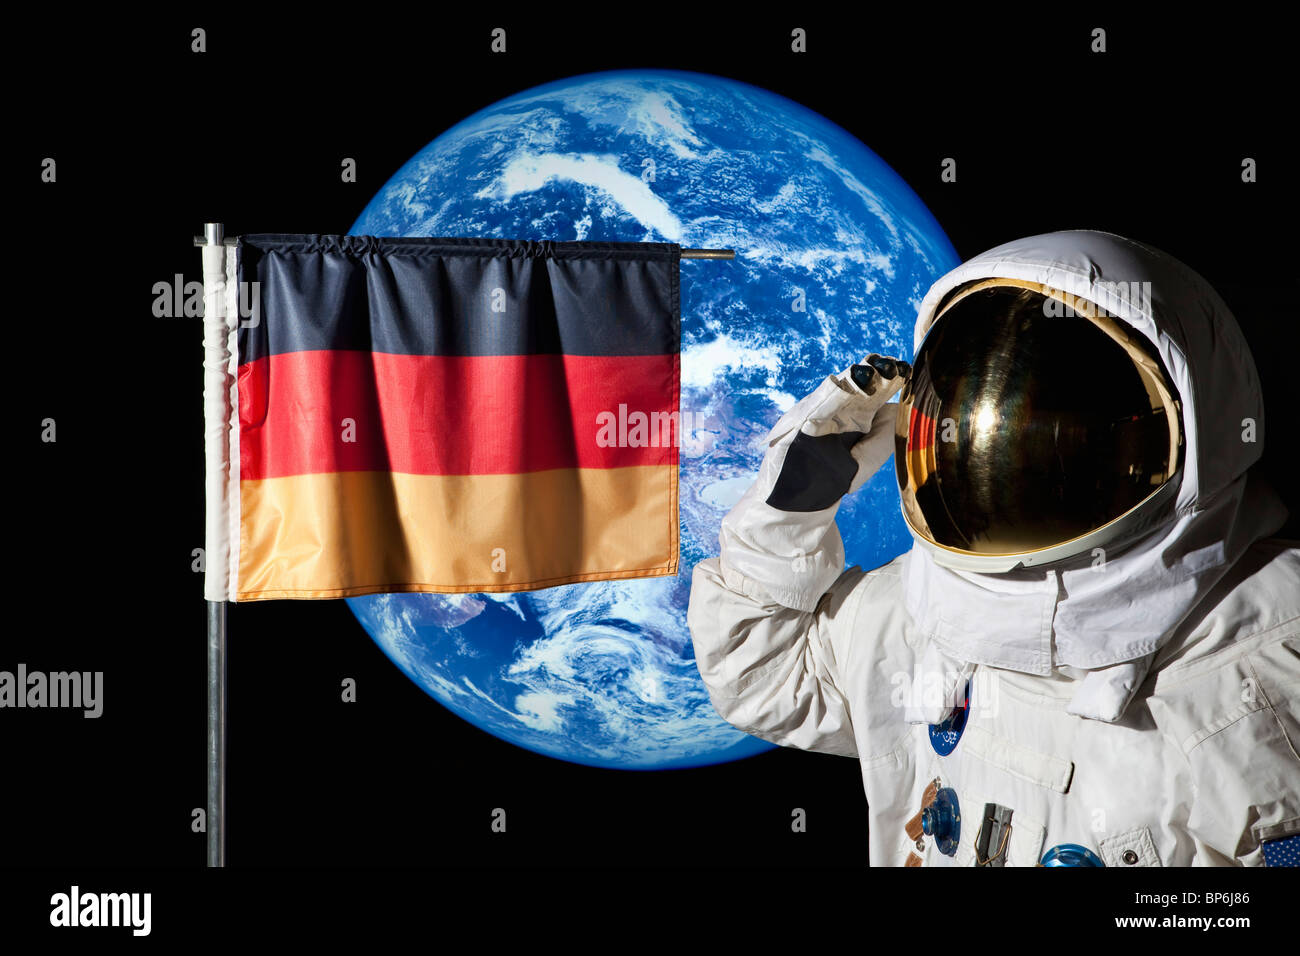 An astronaut saluting an German flag with the earth in the background - Stock Image